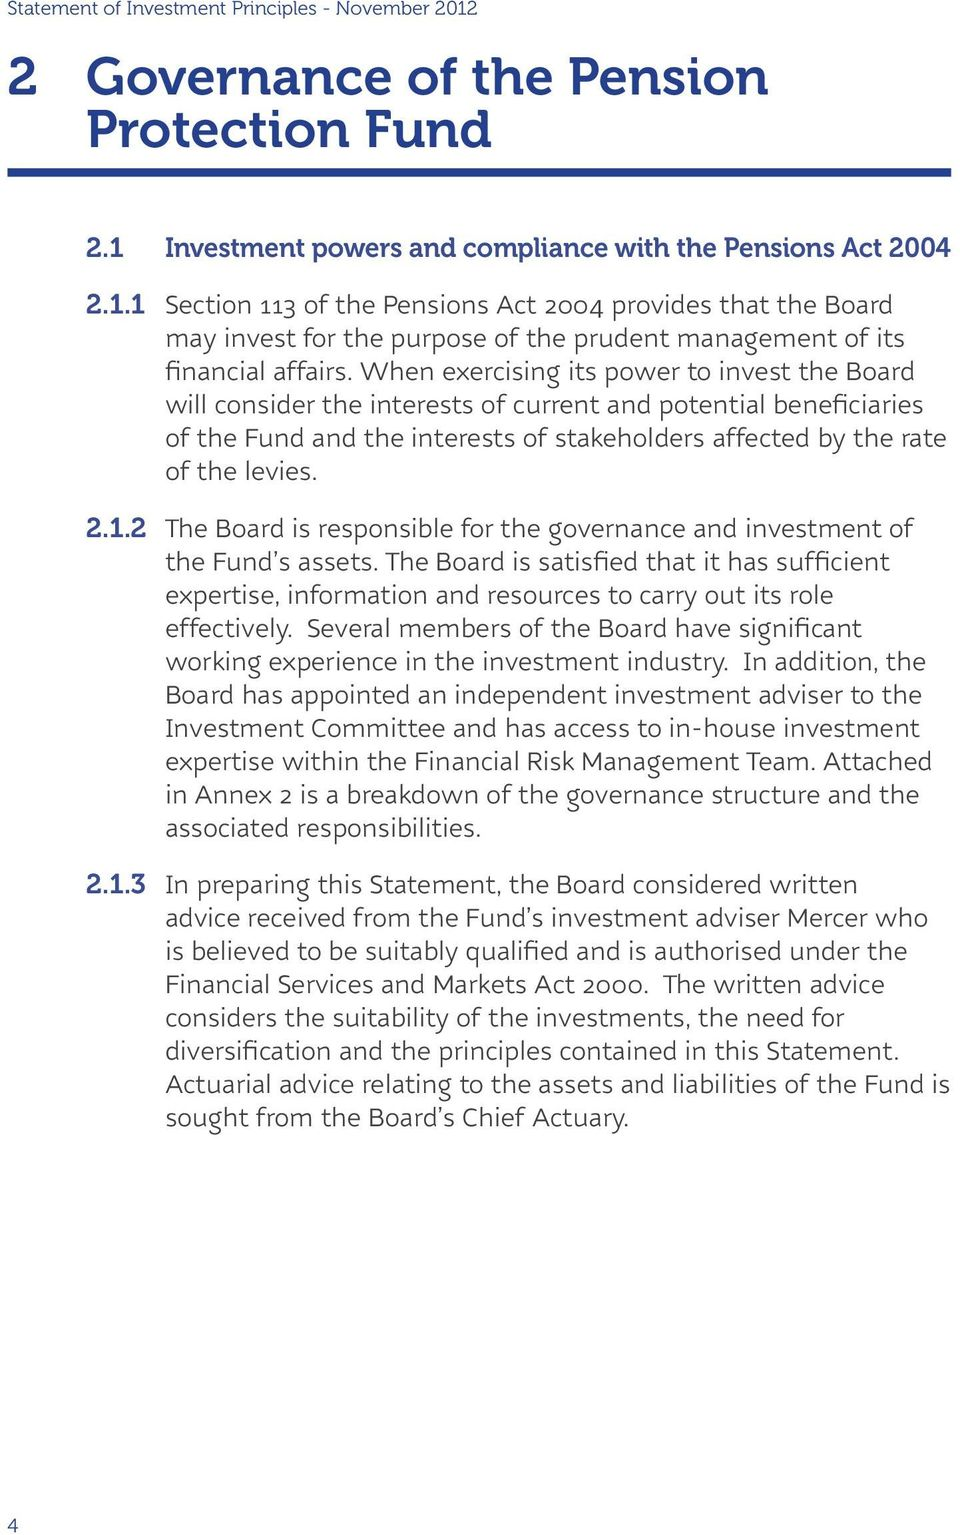 2 The Board is responsible for the governance and investment of the Fund s assets. The Board is satisfied that it has sufficient expertise, information and resources to carry out its role effectively.